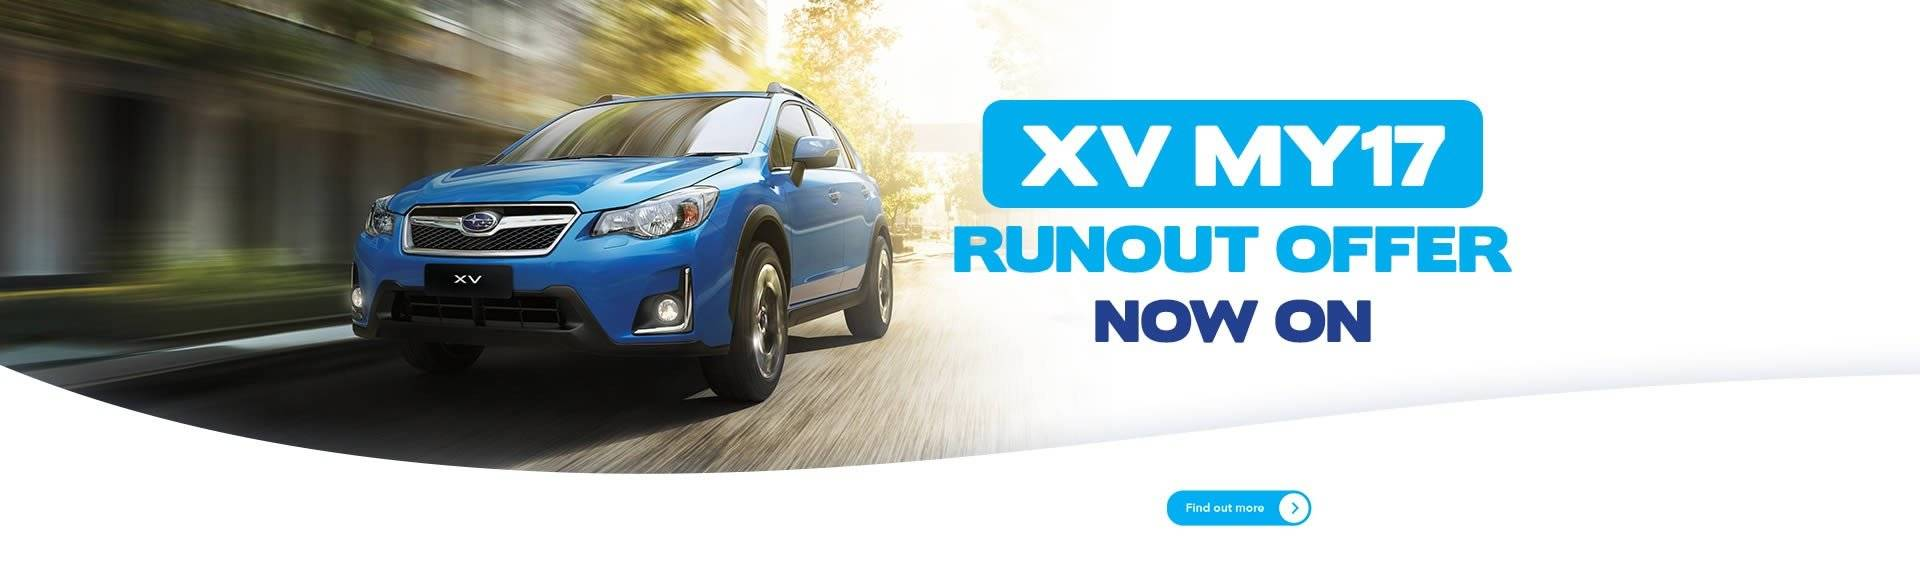 Subaru Melbourne XV MY17 Runout Offer